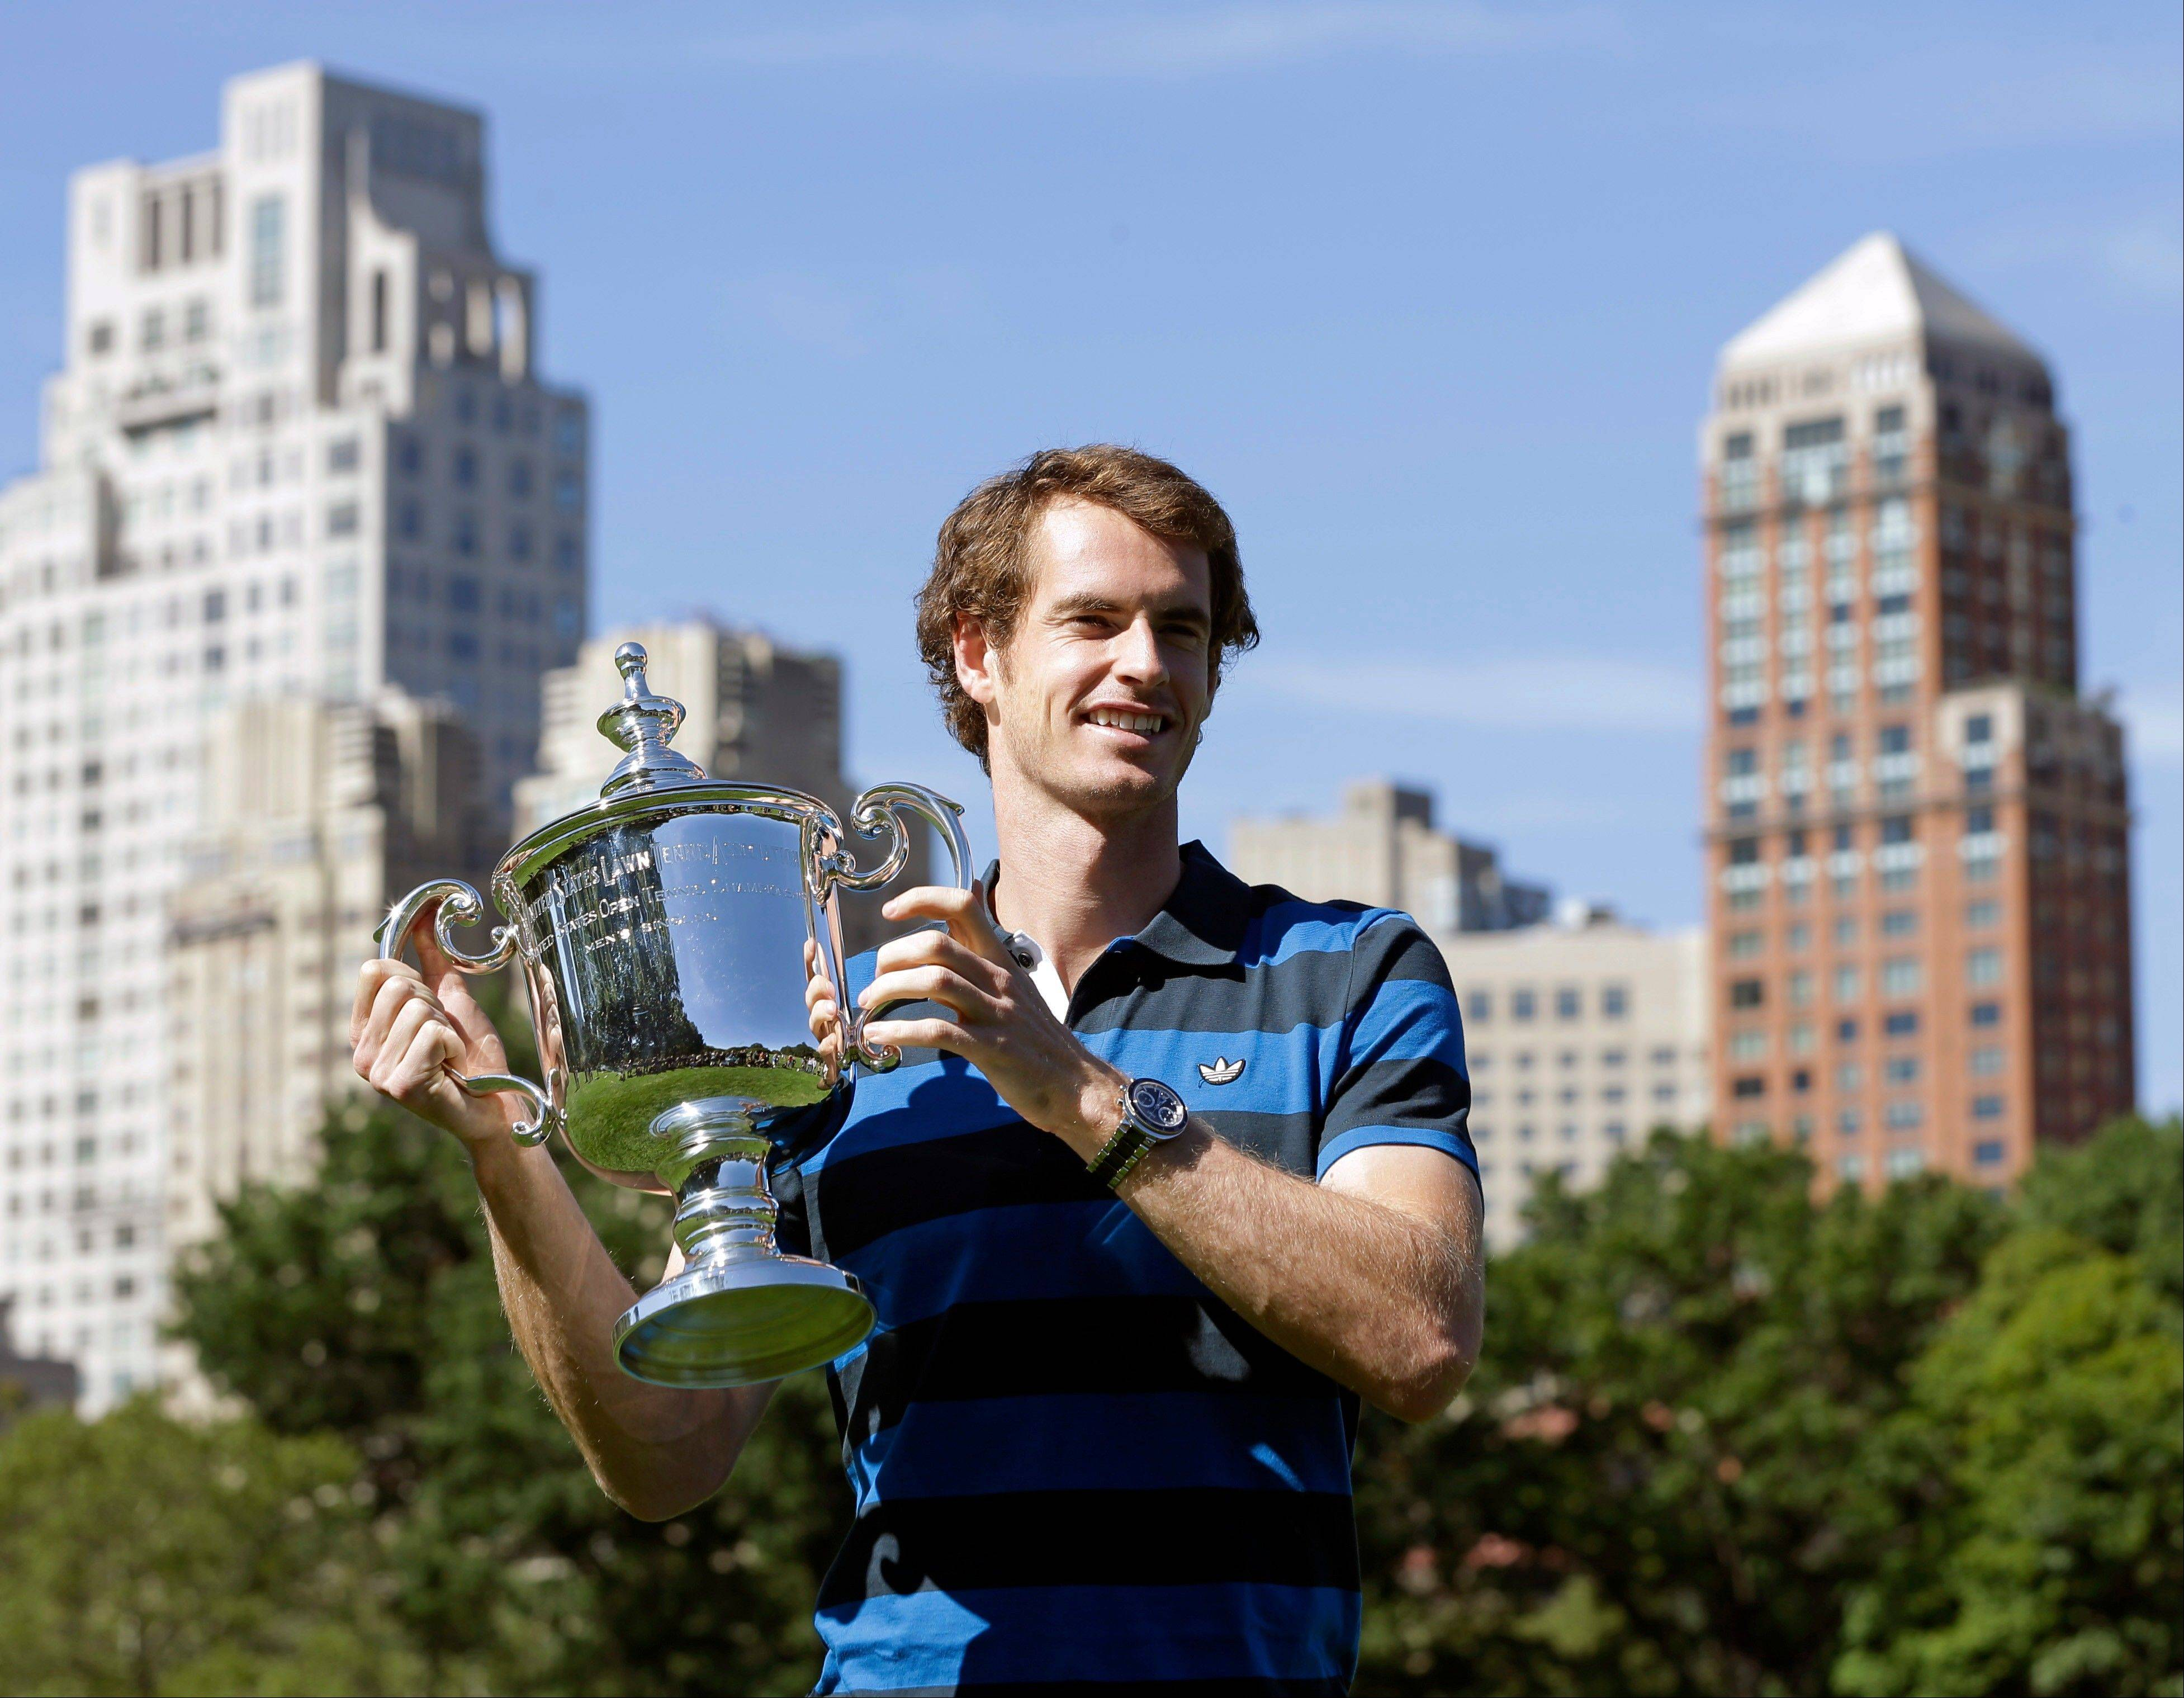 2012 U.S. Open tennis men's singles champion Andy Murray poses Tuesday in Central Park.